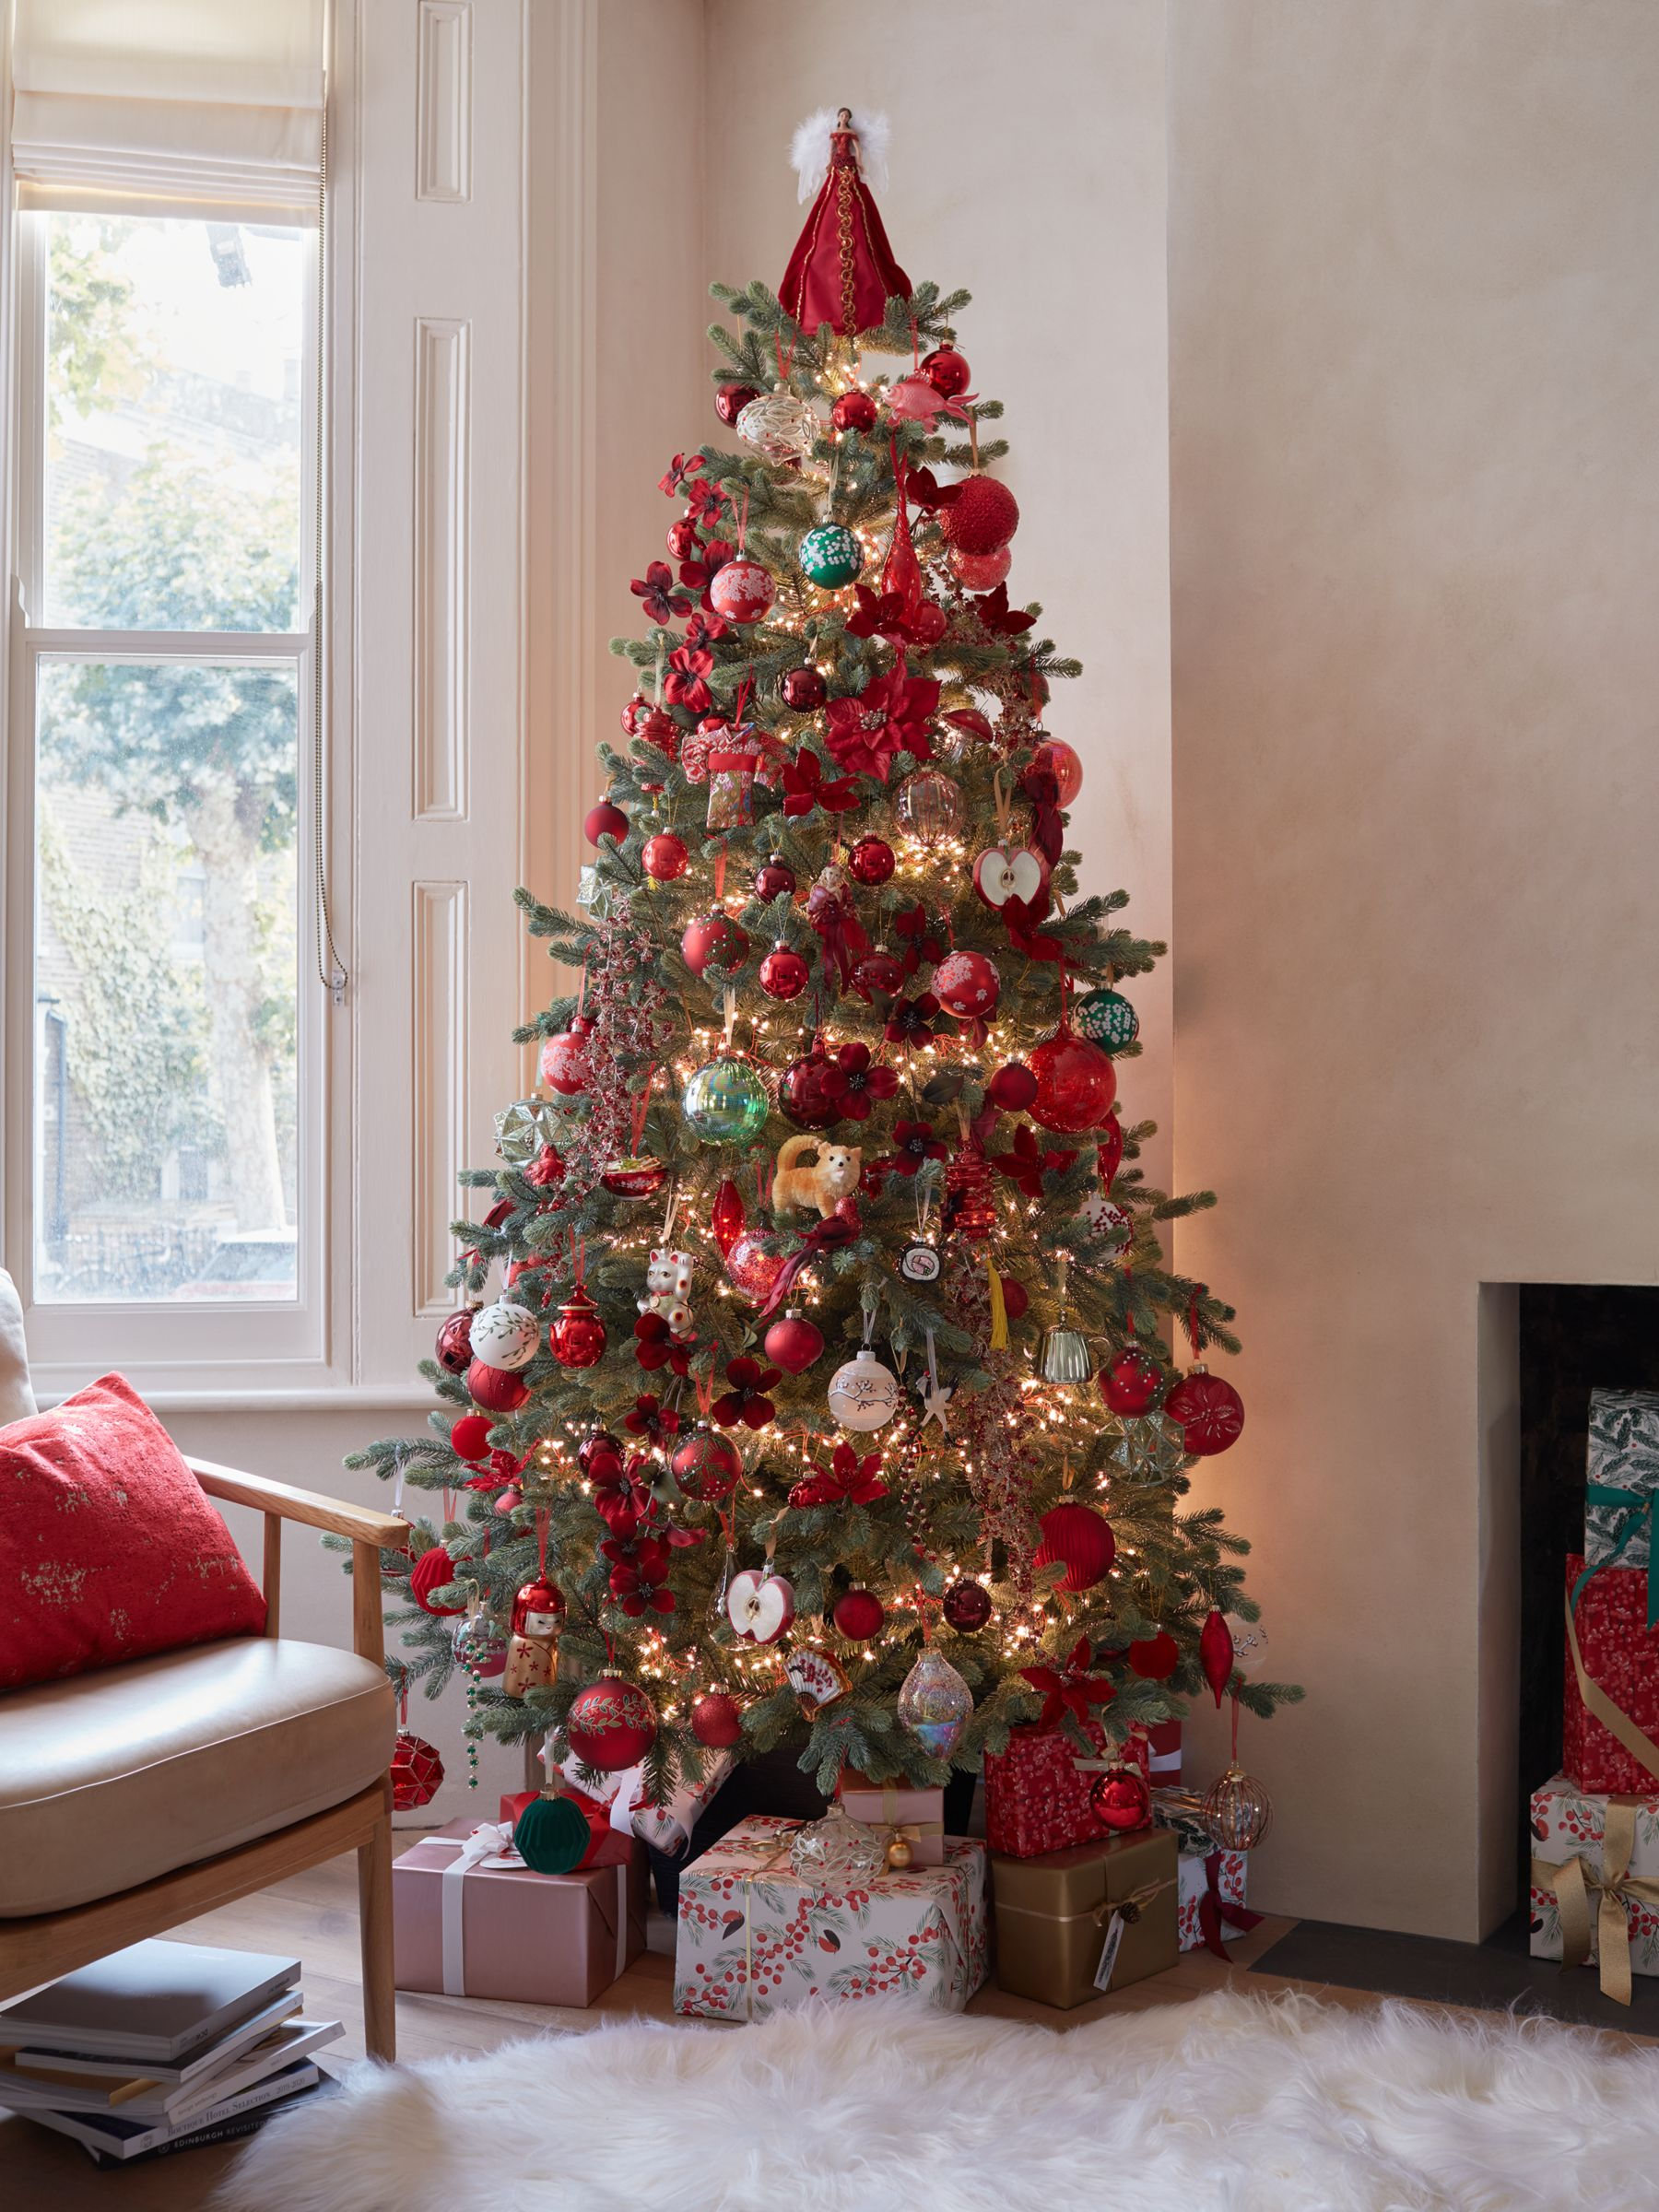 Beautiful Christmas tree decorated with colourful, Japanese-inspired baubles and ornaments